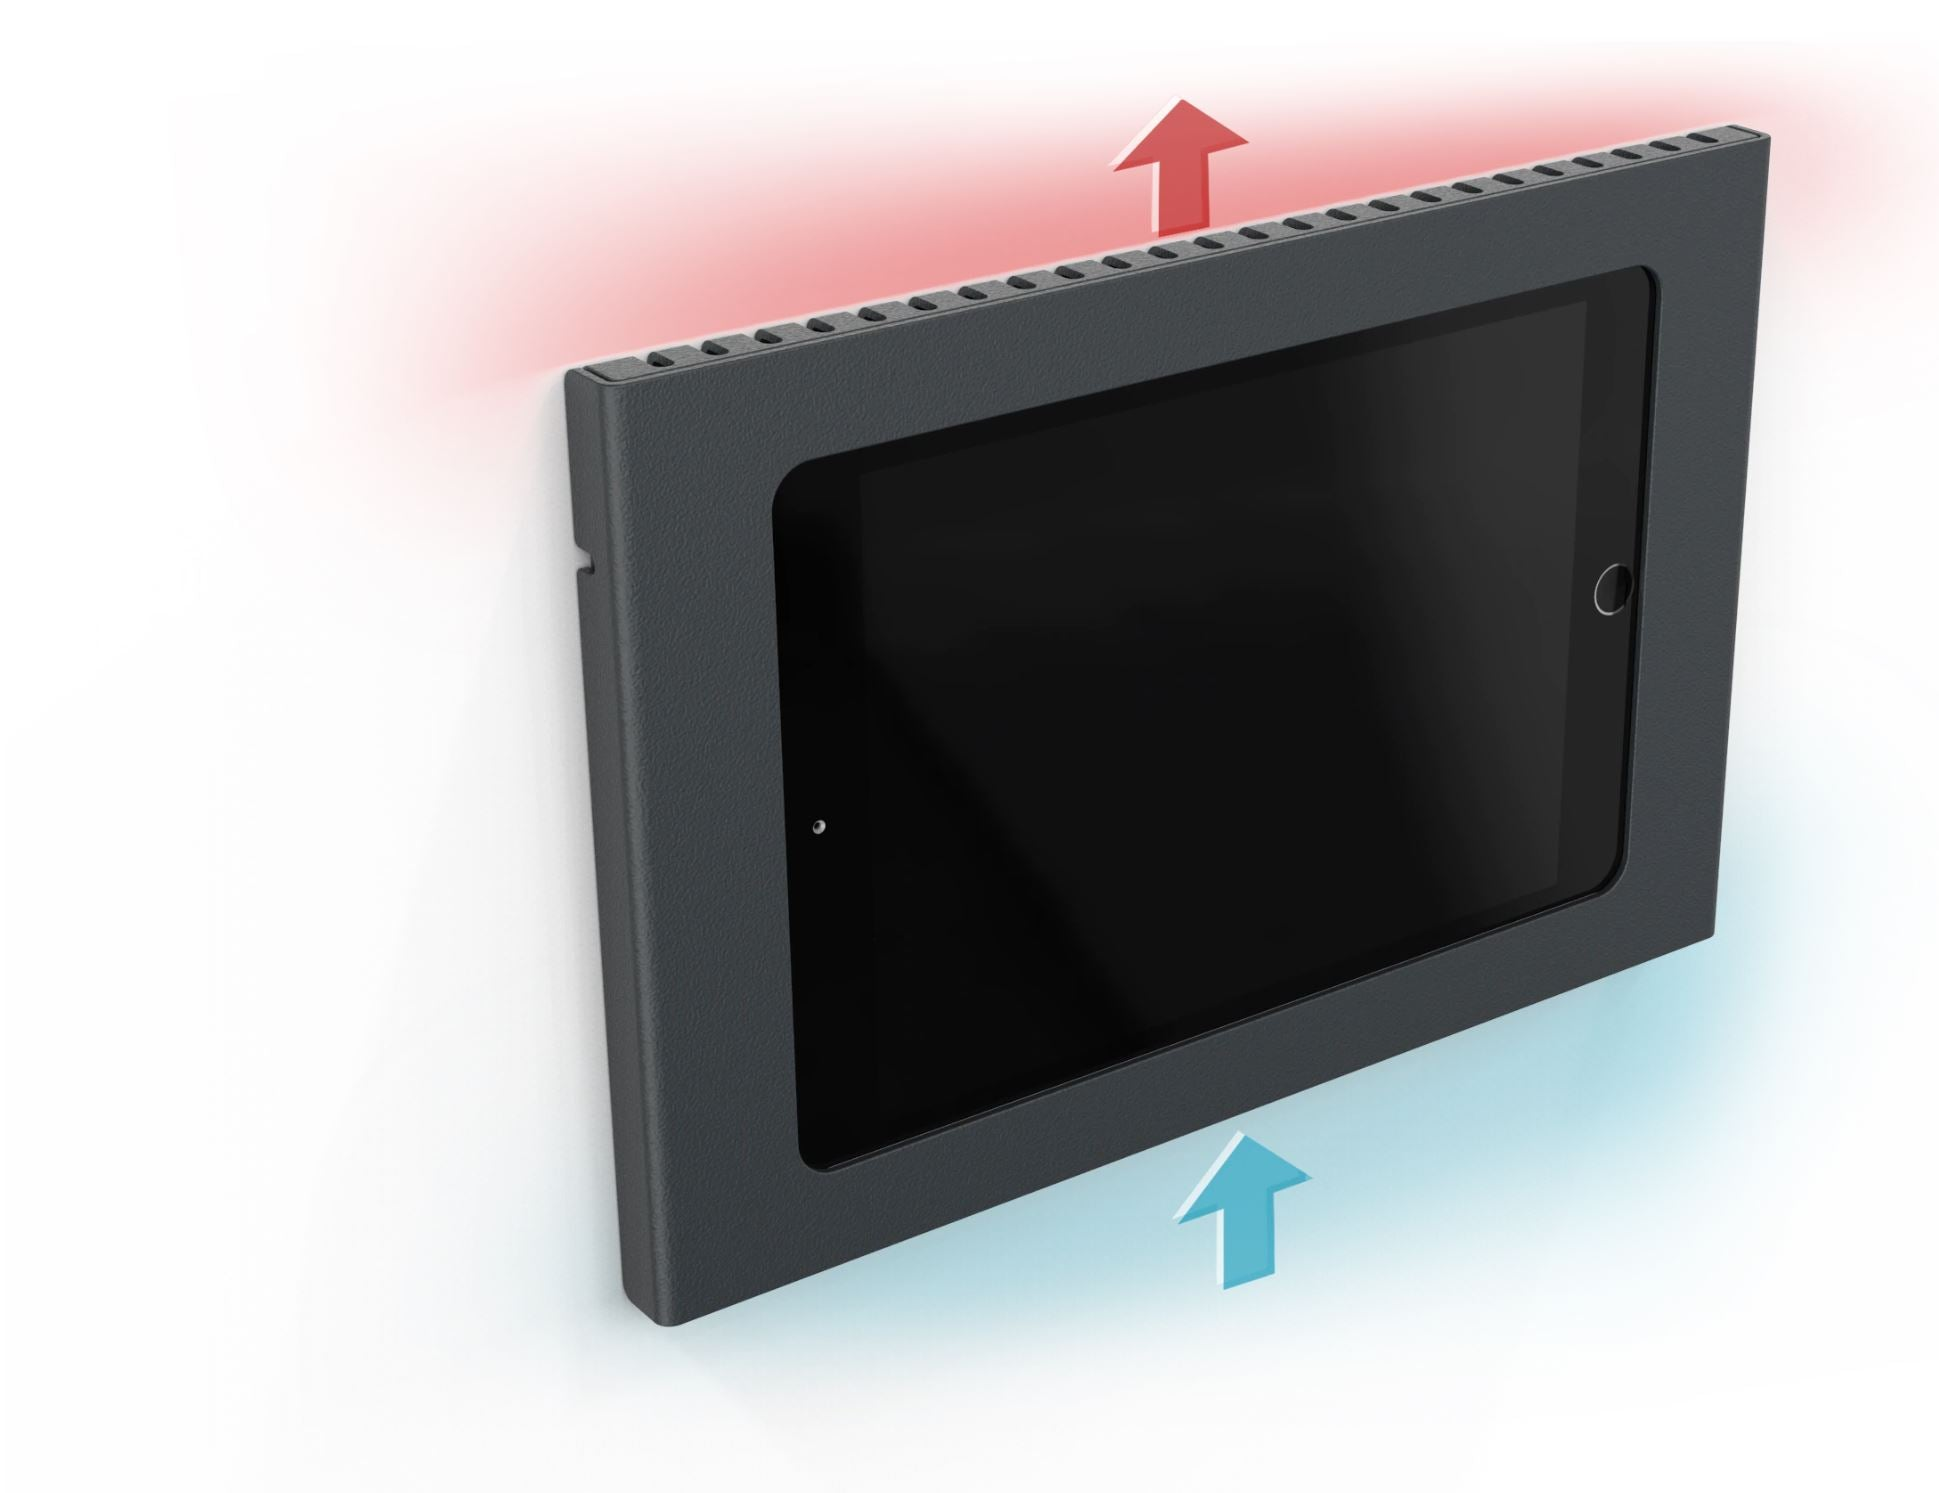 Heckler Wall Mount, black color, ventilation process